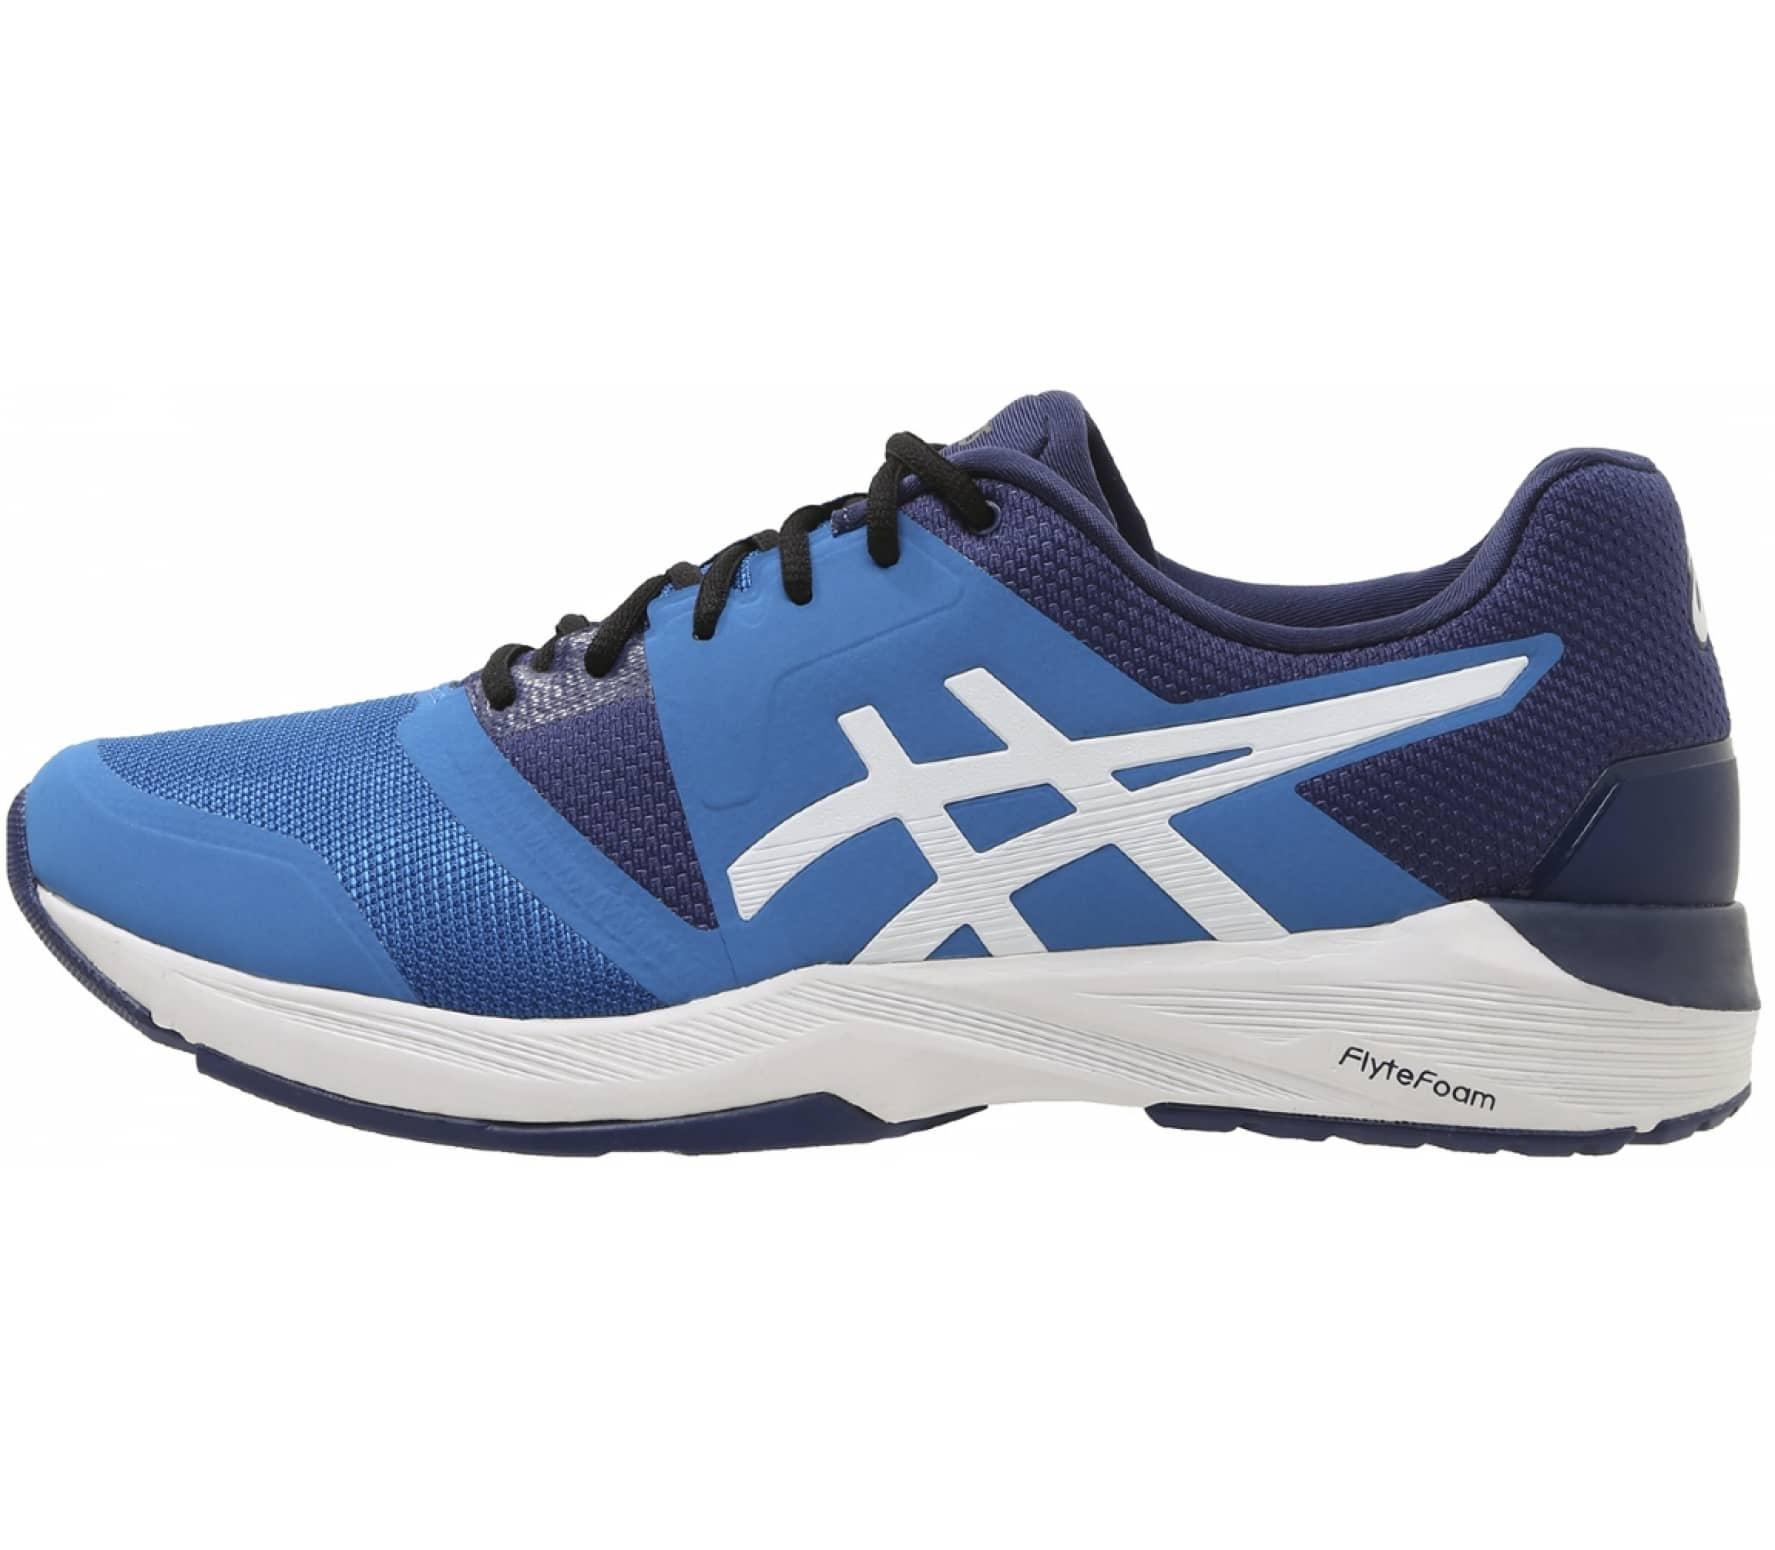 6ba5b21ad ASICS - GEL-QUEST FF men s fitness shoes (blue) - buy it at the ...